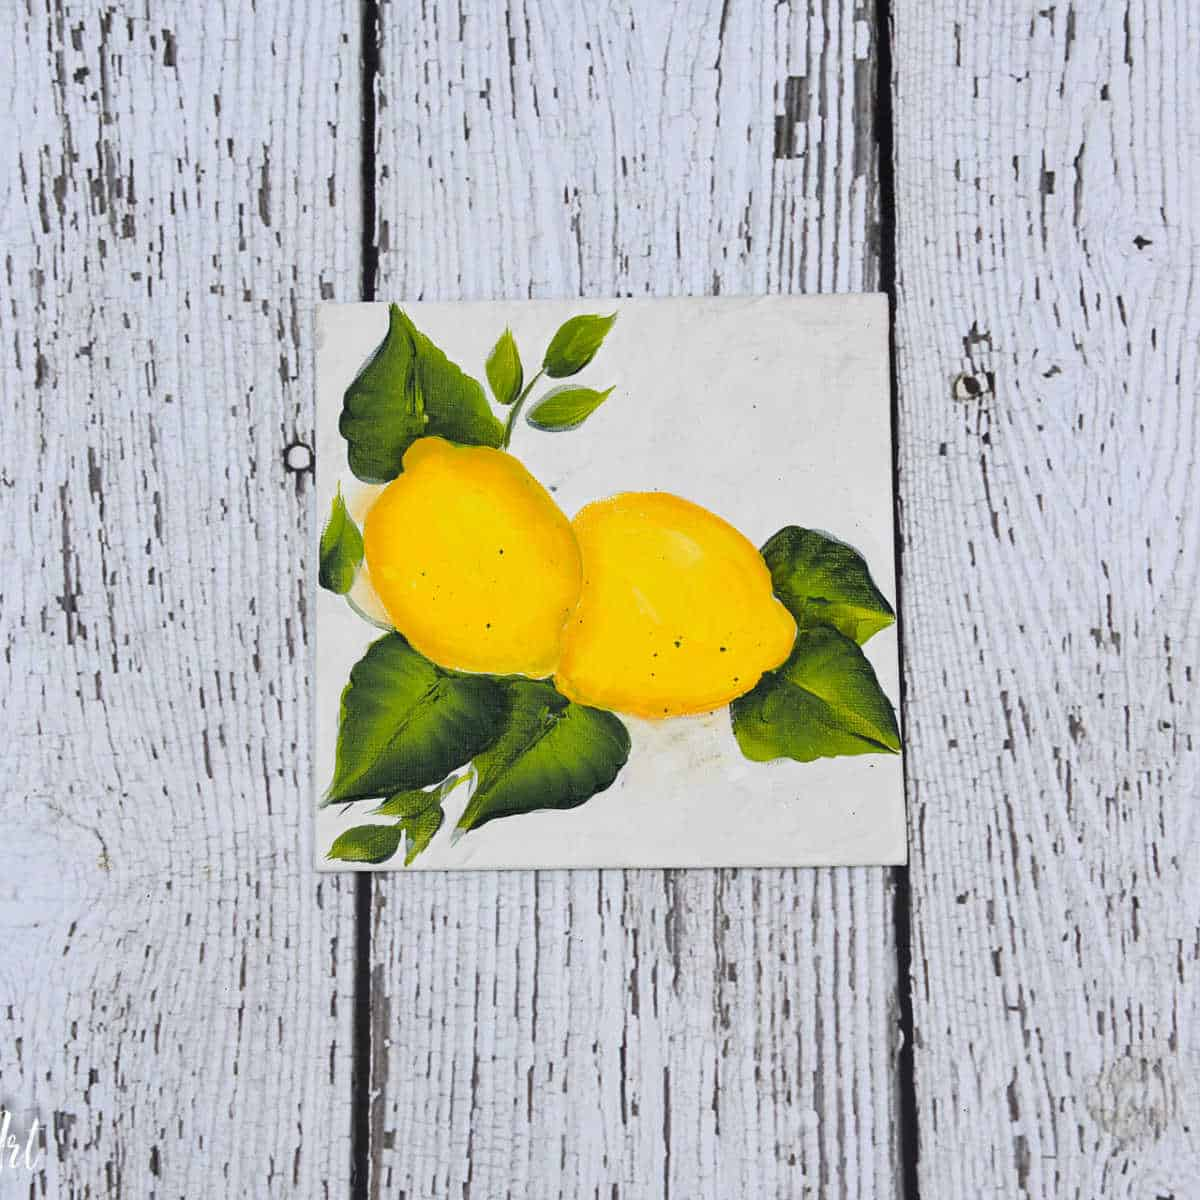 How to Paint Lemons in Acrylics